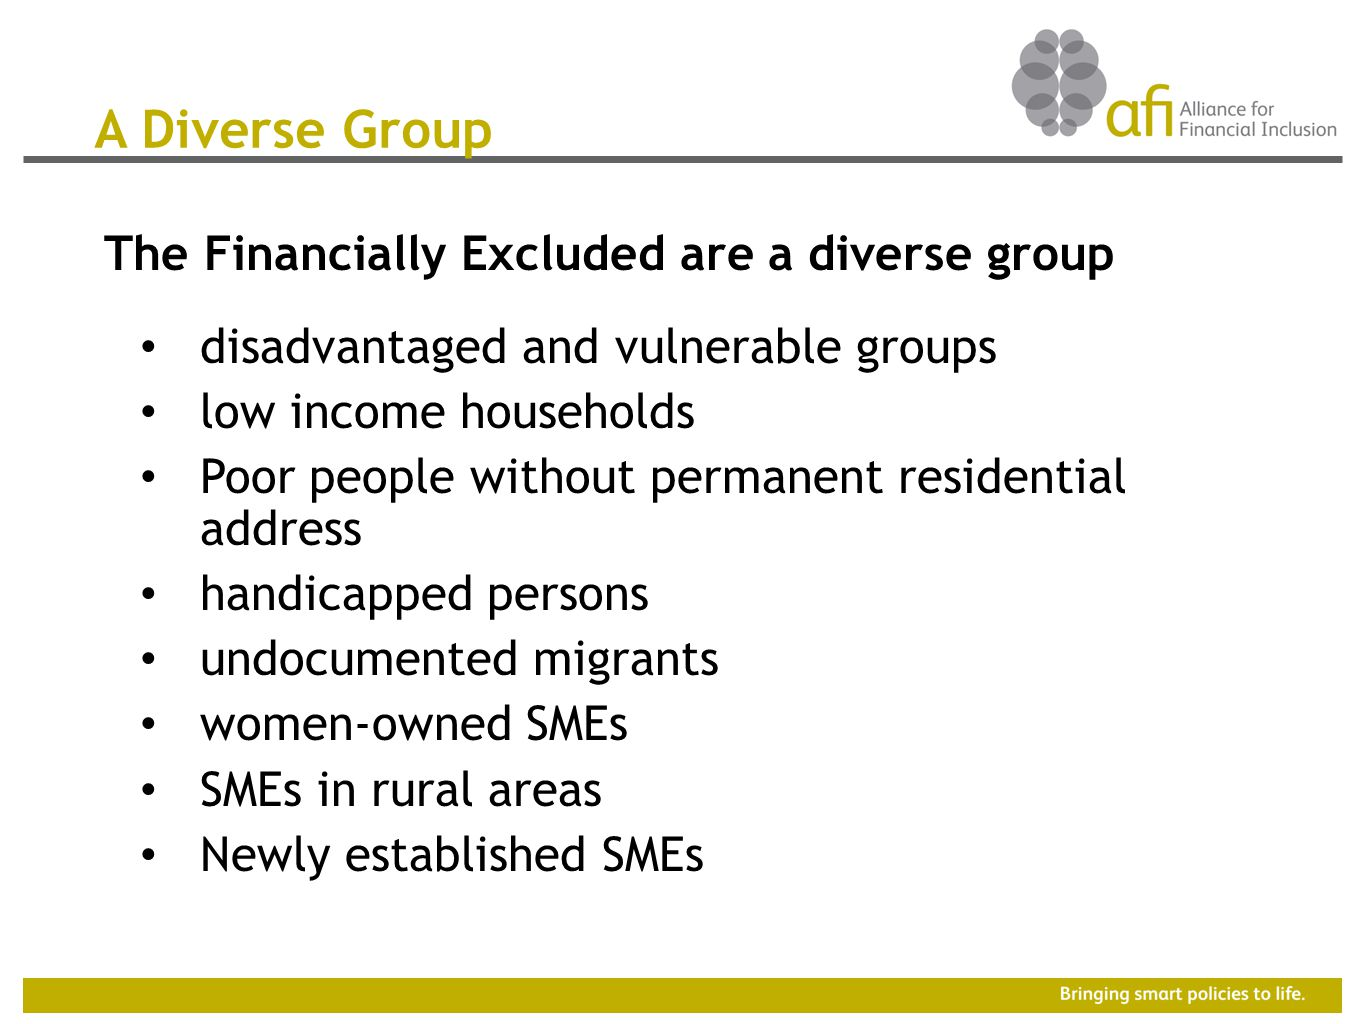 The Financially Excluded are a diverse group disadvantaged and vulnerable groups low income households Poor people without permanent residential address handicapped persons undocumented migrants women-owned SMEs SMEs in rural areas Newly established SMEs A Diverse Group